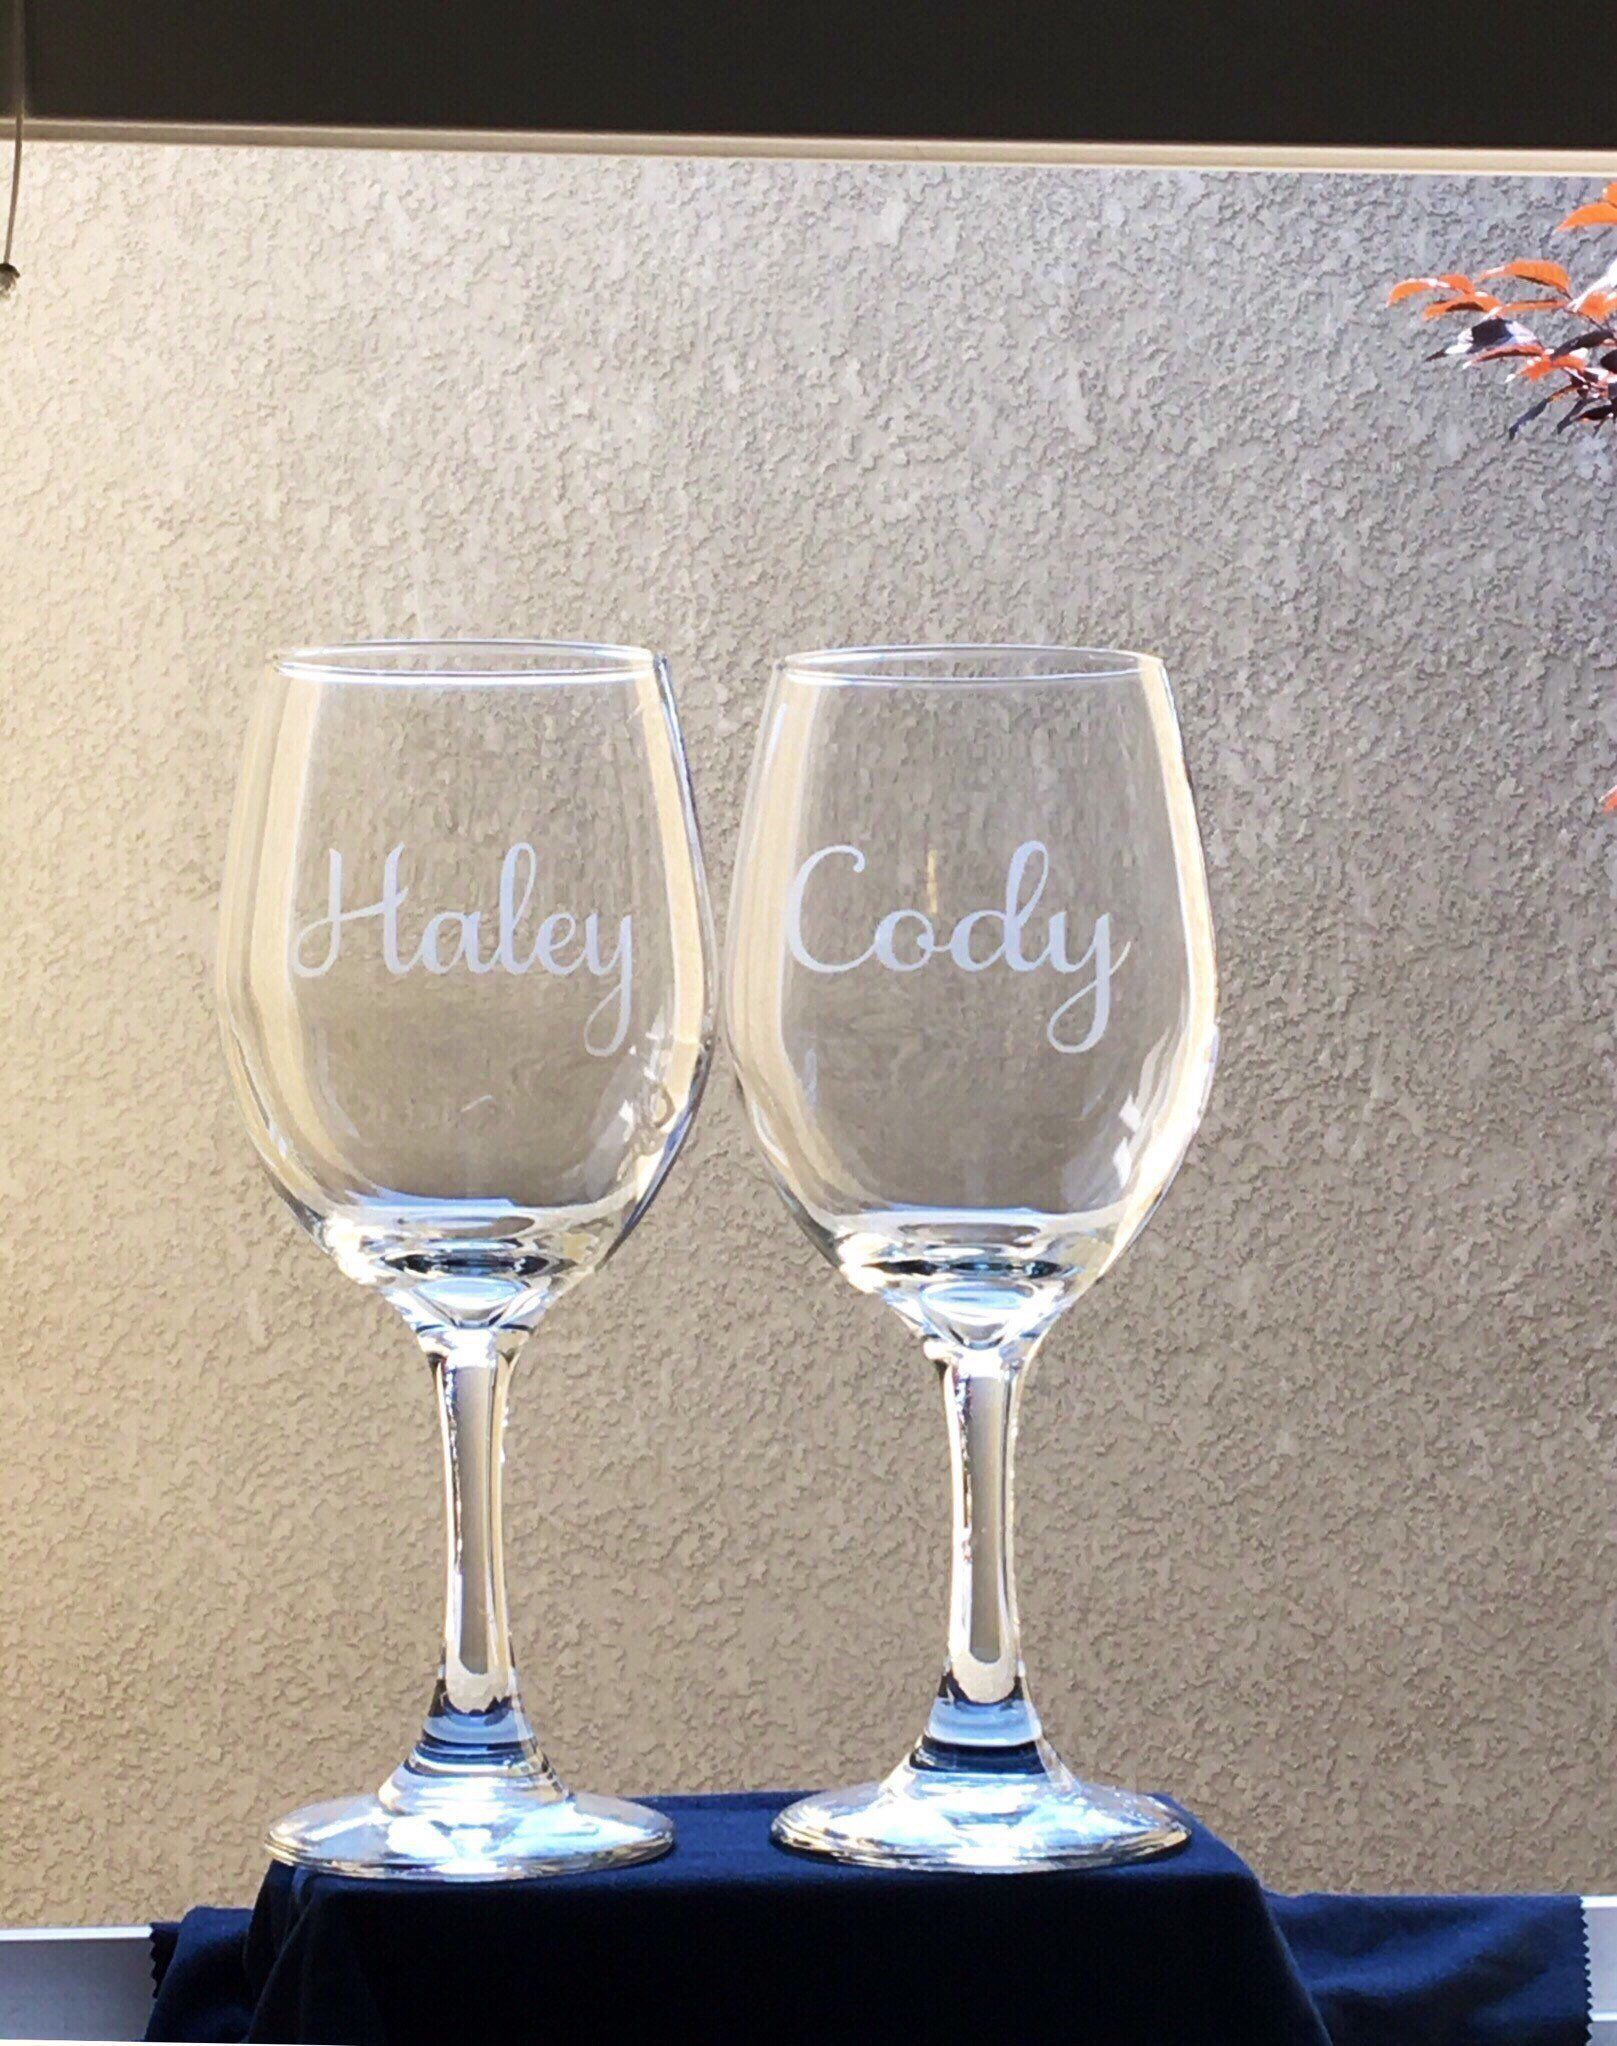 Bridal Shower Gift His And Hers Wedding Glasses Etched Name Wine